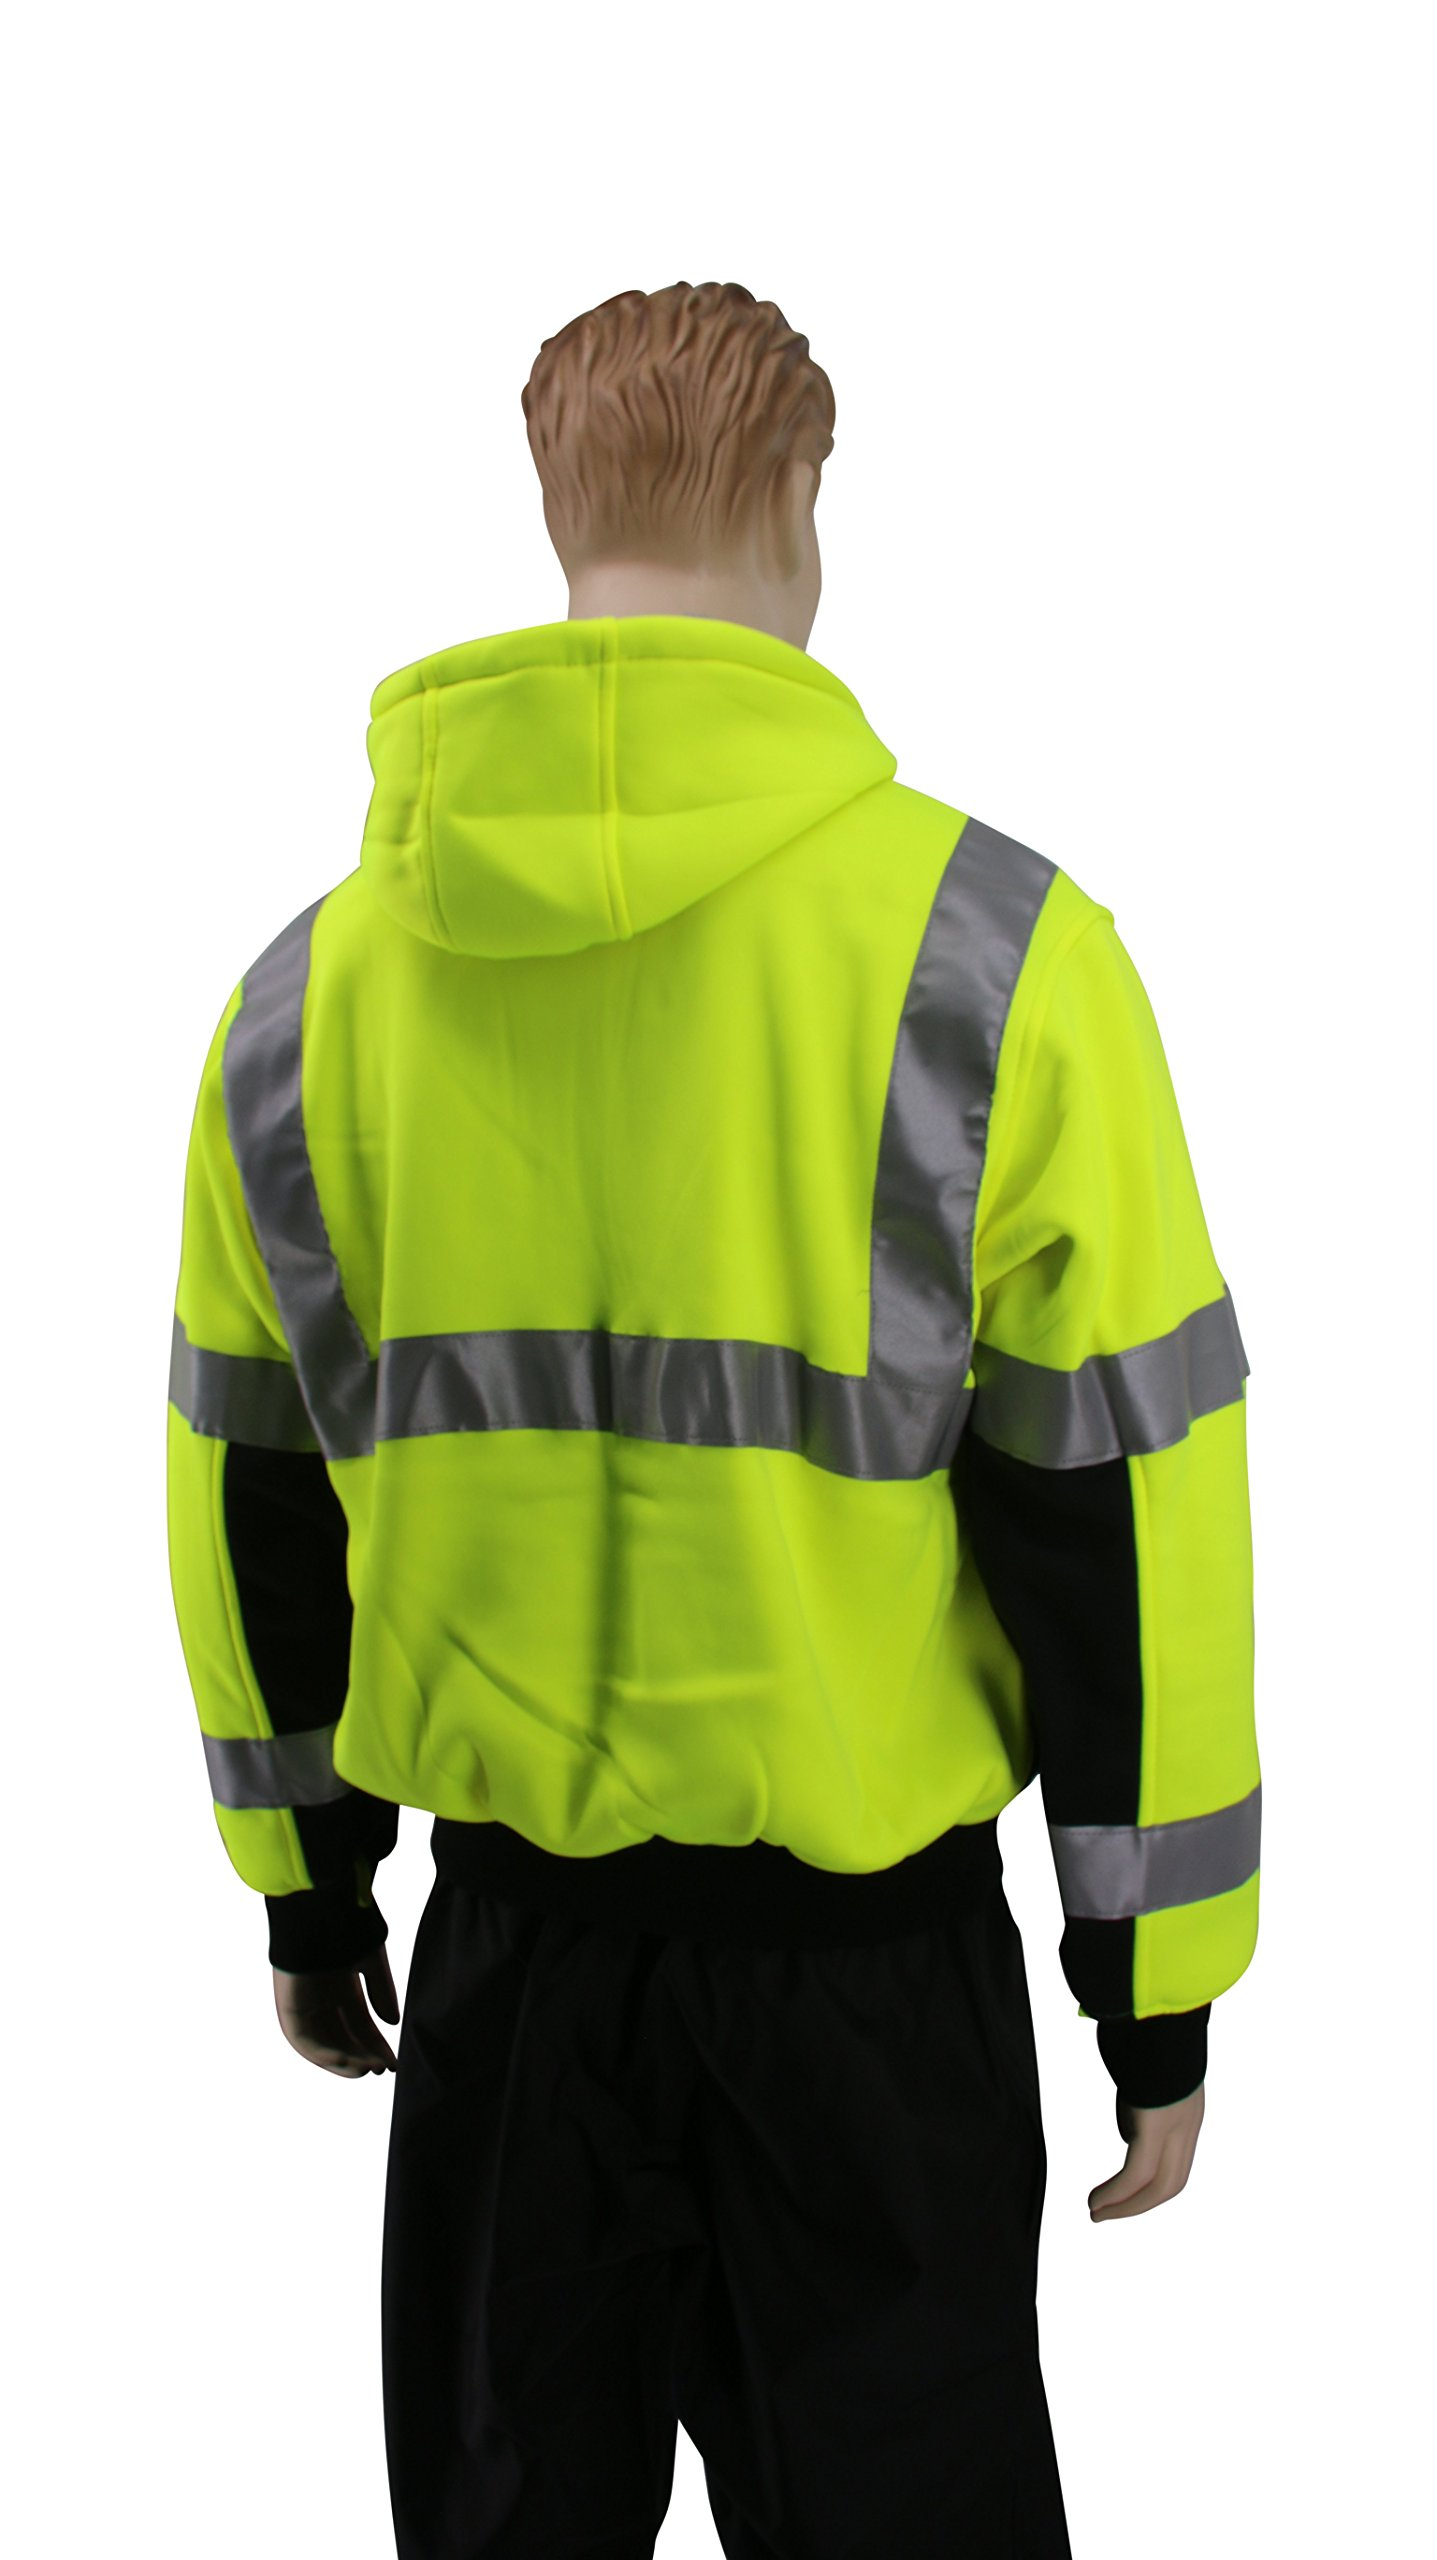 Brite Safety Style 5010 Hi Viz Sweatshirts for Men or Women   Safety Hi Vis Hoodie, 2-Tone Sweatshirt   Thermal Liner, Full Zip 16oz, with 3M Reflective Tape   ANSI 107 Class 3 (4XL) by Brite Safety (Image #2)